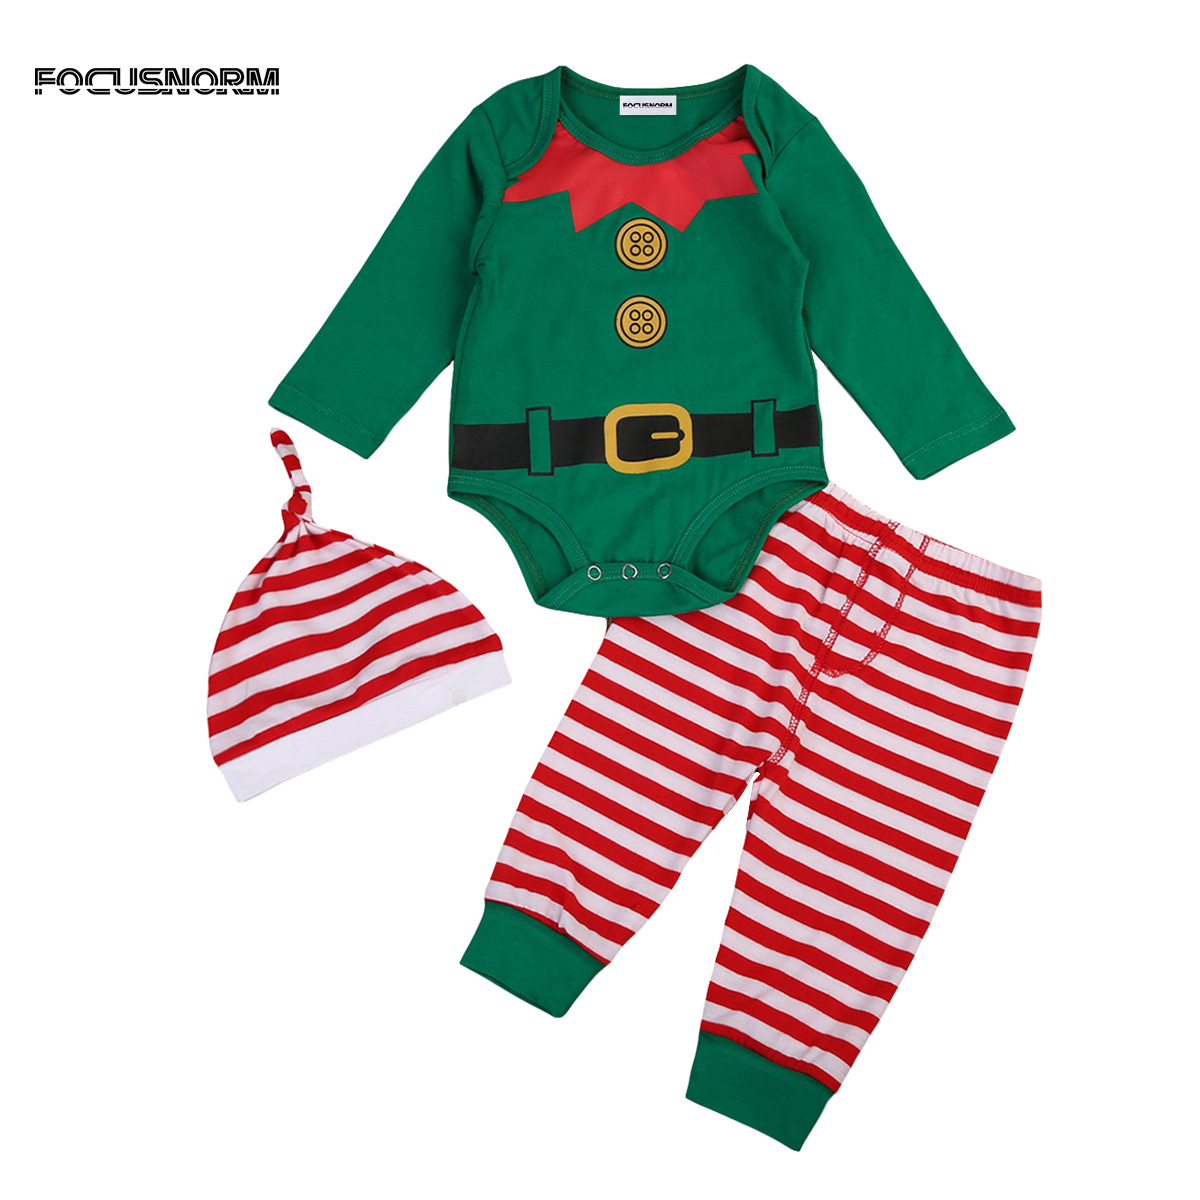 3PCS Christmas Romper Pants Hat Set Newborn Infant Baby Boy Girl Striped Santa Outfits Clothes XMAS 0 24m newborn infant baby boy girl clothes set romper bodysuit tops rainbow long pants hat 3pcs toddler winter fall outfits